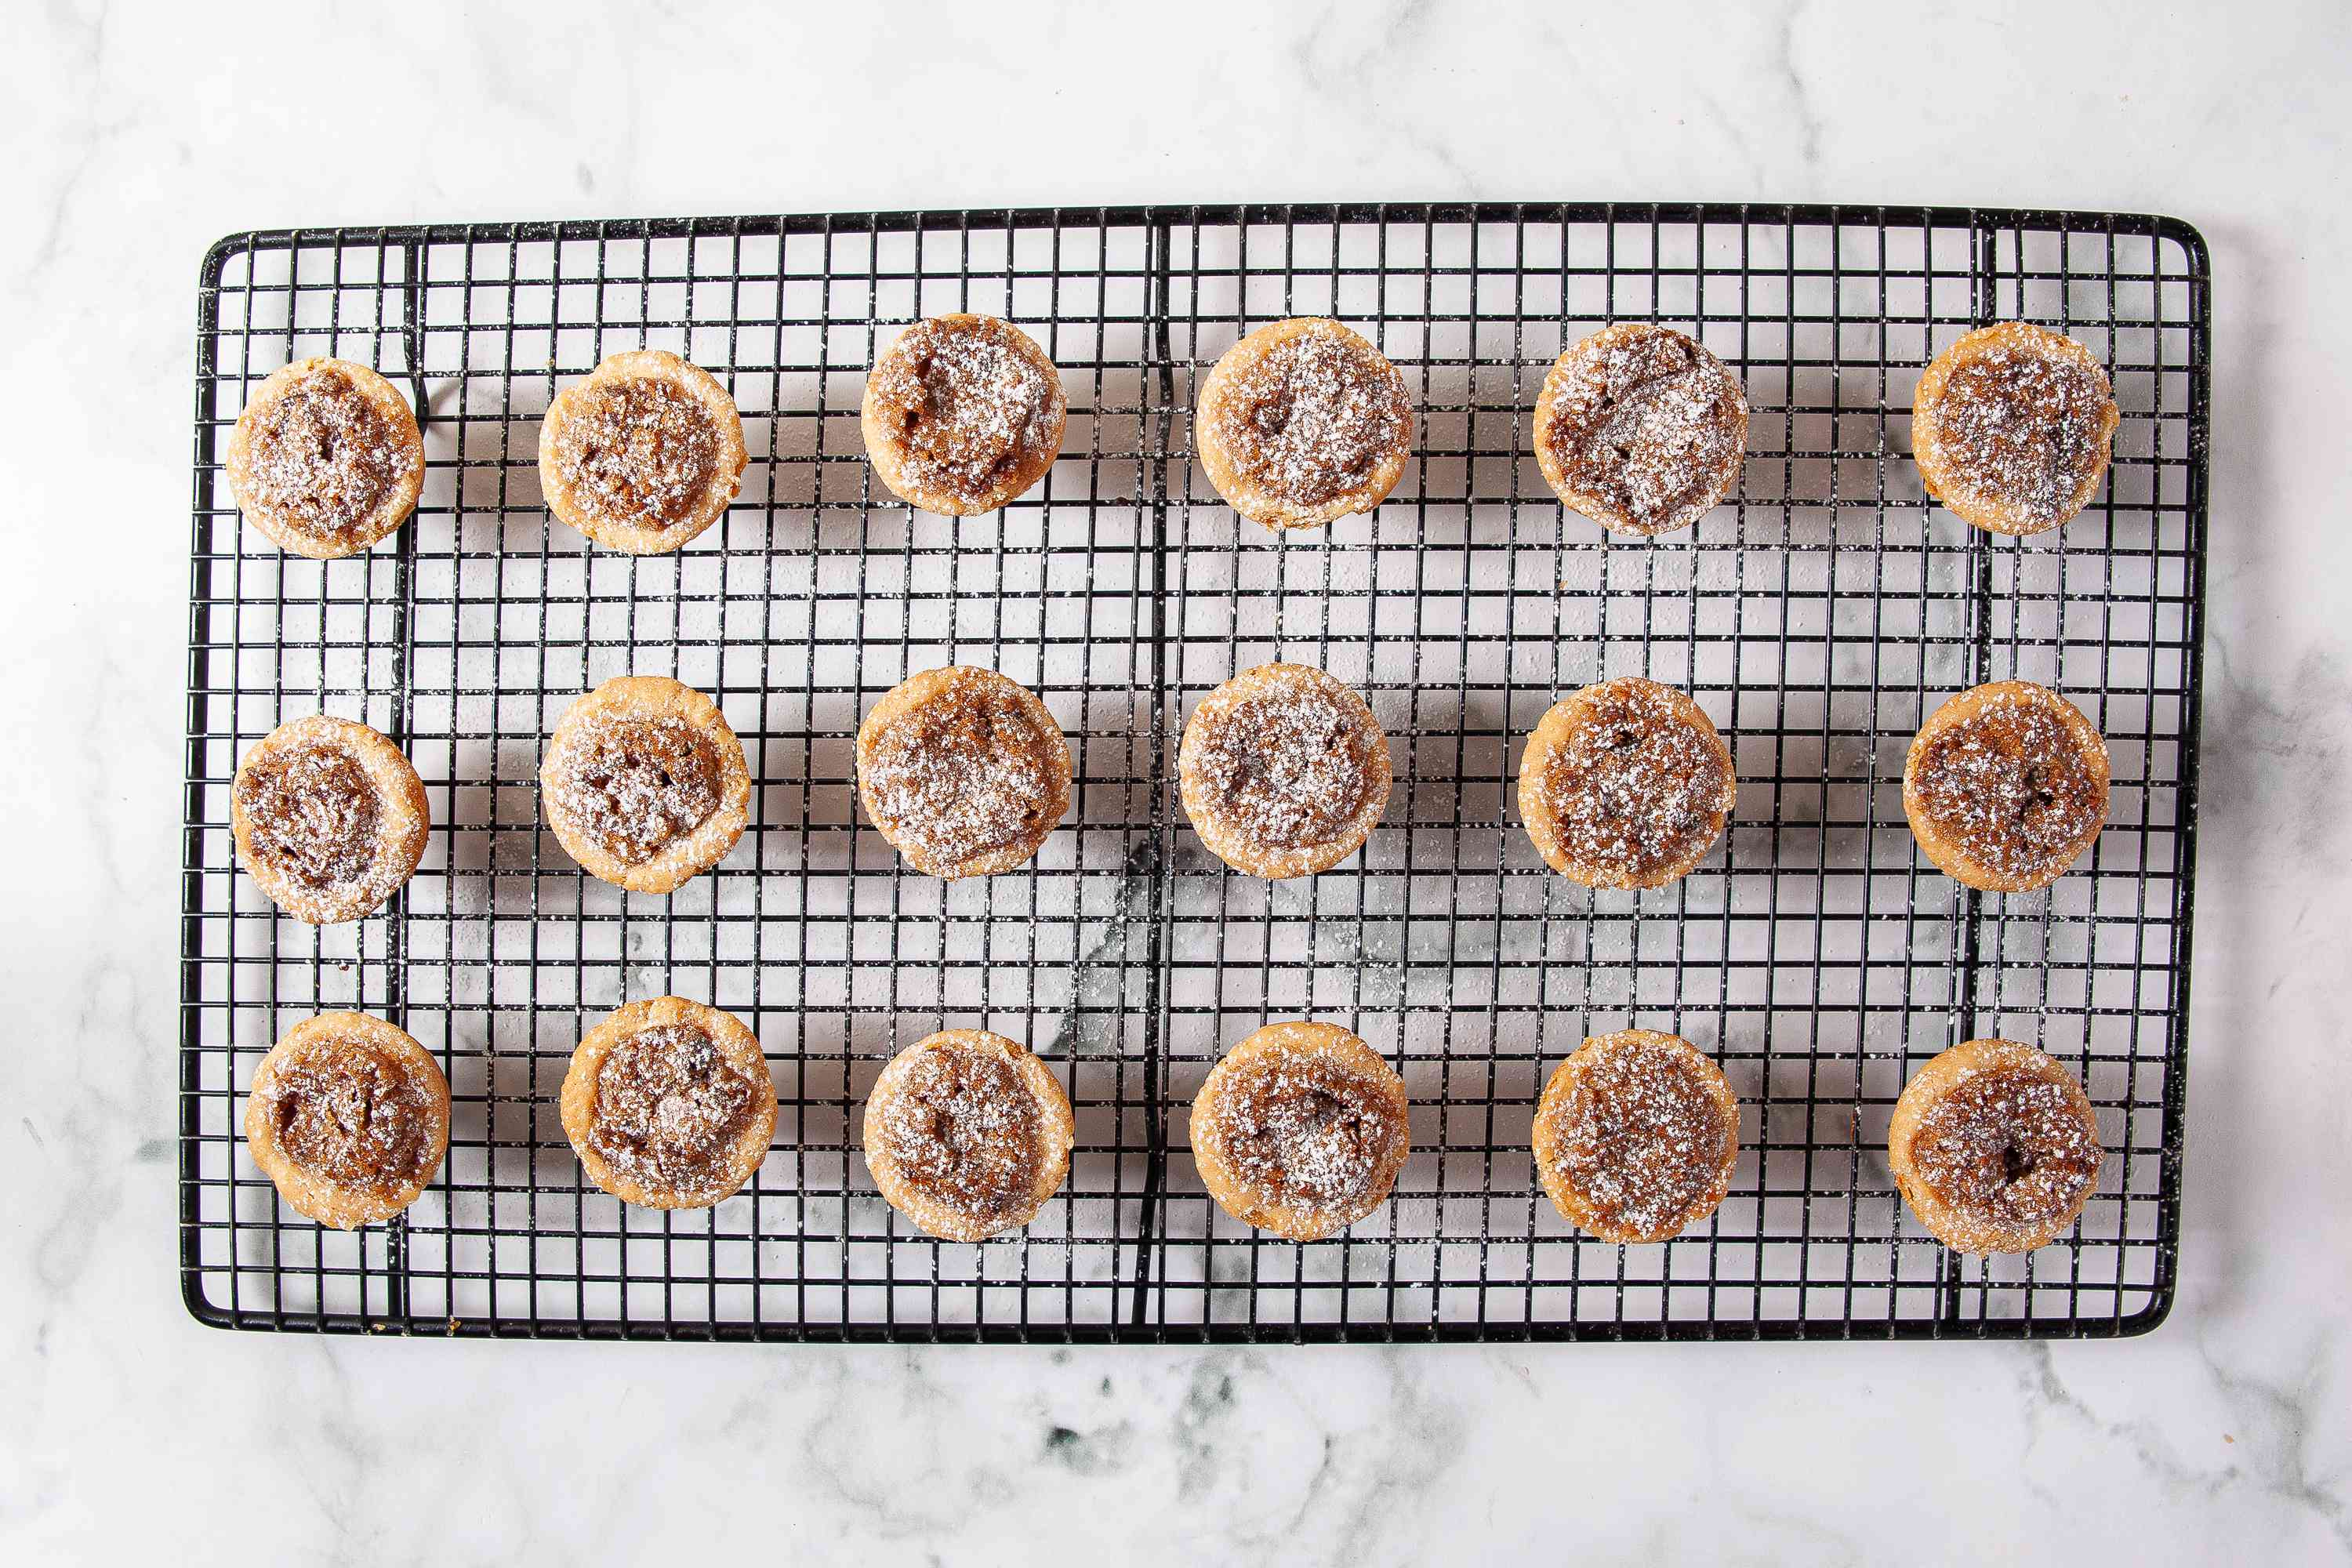 Pecan Tassies dusted with powdered sugar